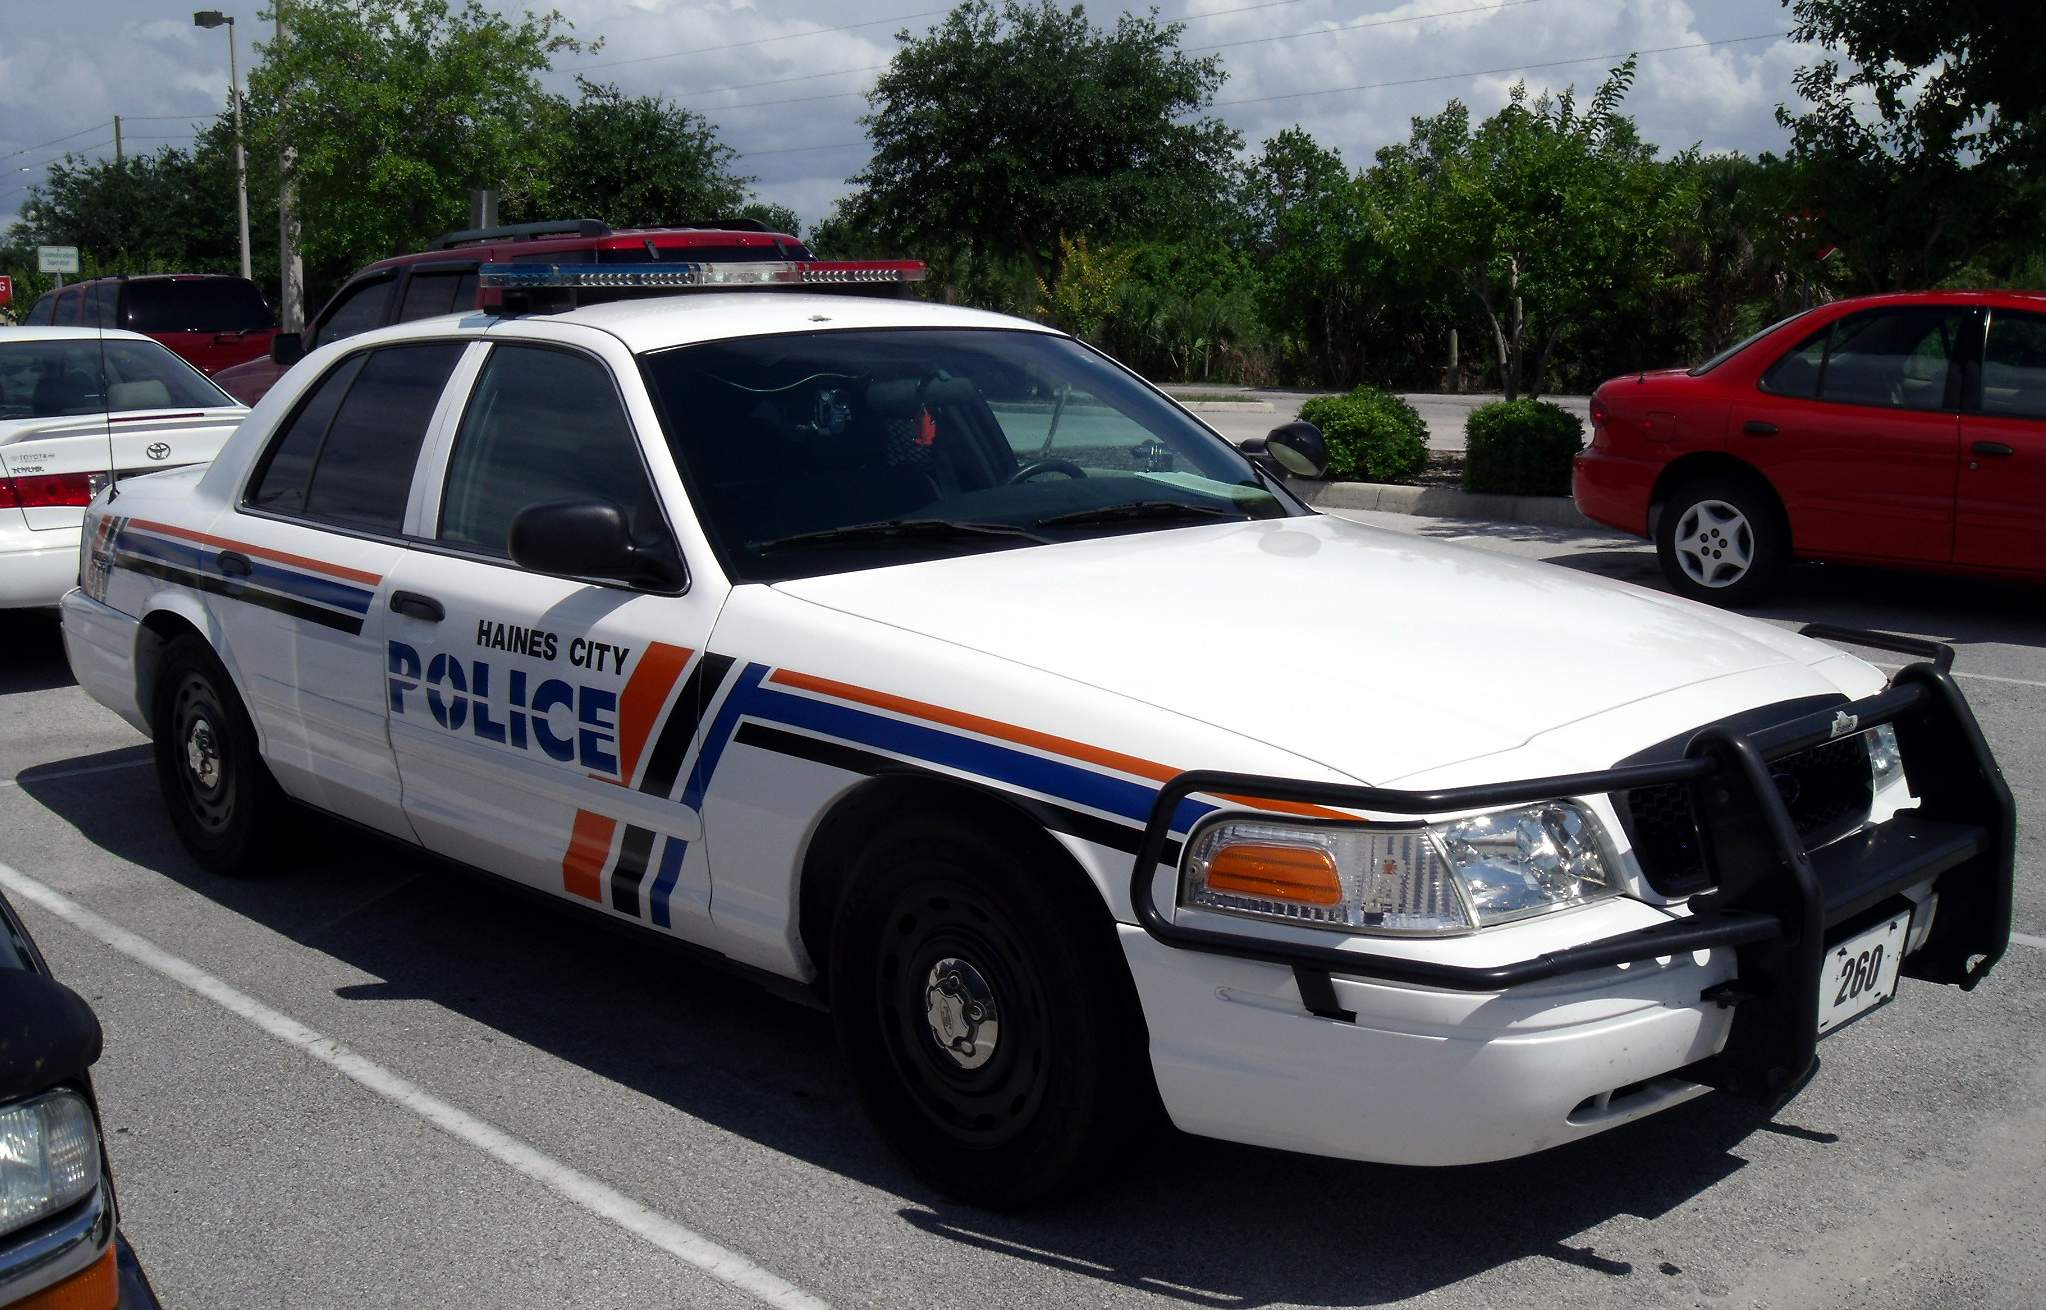 usa 2001 ford crown victoria jpg file haines city police fl ford crown victoria jpg